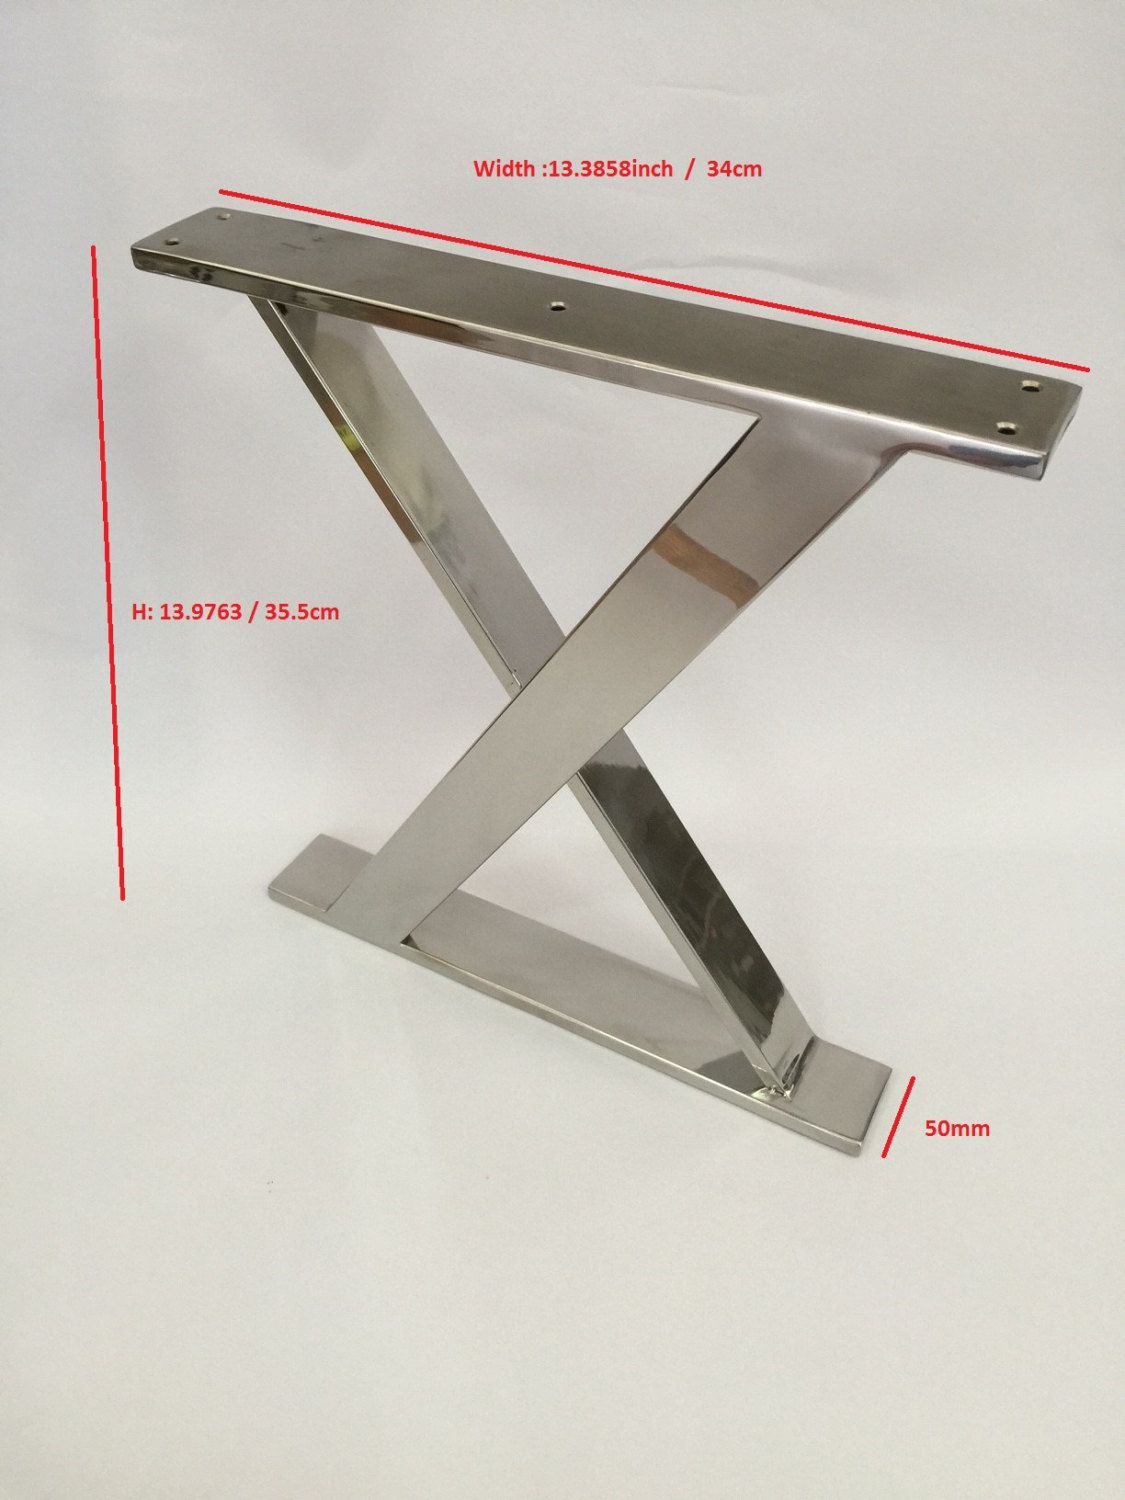 14inch X Frame stainless steel bench base, ottoman base, seat base ...